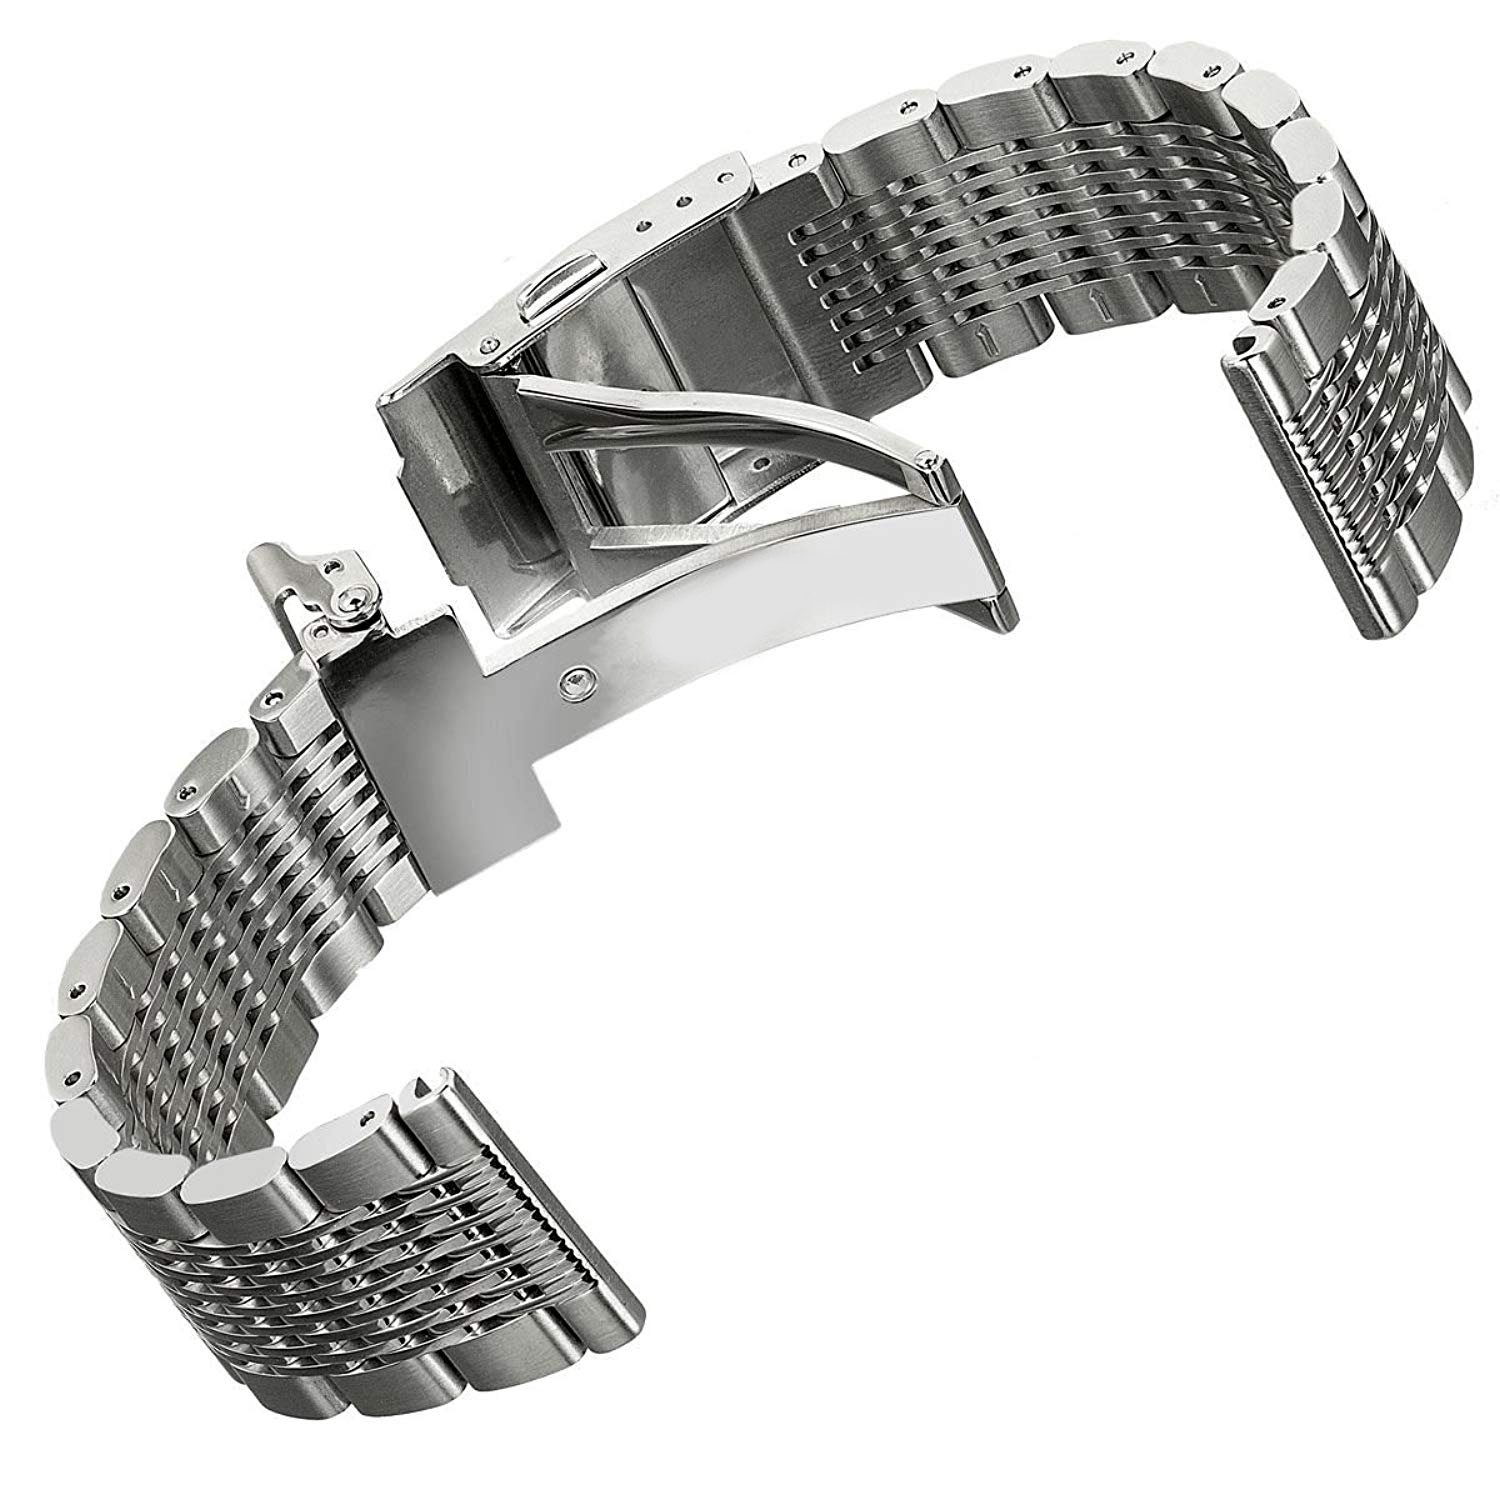 Solid Mesh Stainless Steel Bracelets 20mm/22mm/24mm Watch Bands Deployment Buckle Brushed/Polished Strap for Men Women by Hstrap (Image #2)